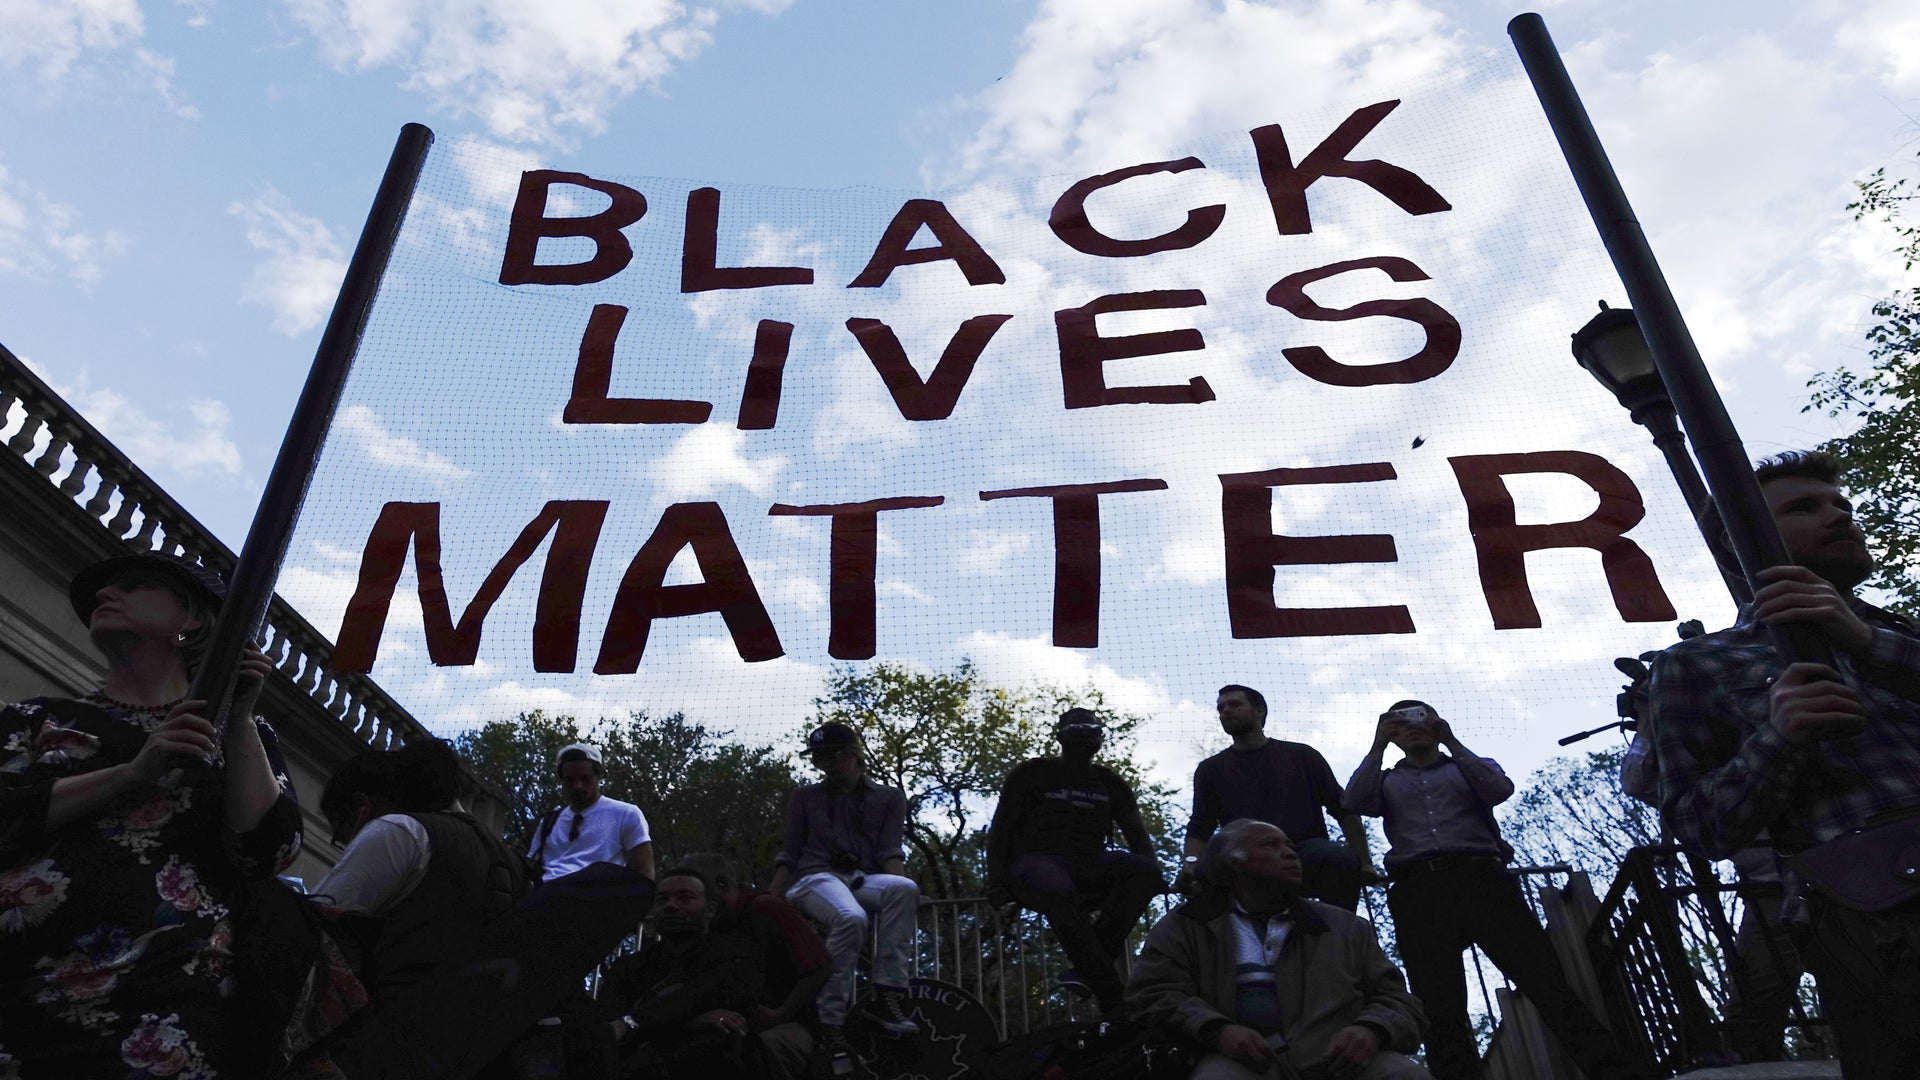 'The Work Will Be Harder, But The Work Is The Same:' Black Lives Matter Release Statement On Trump's Presidential Win